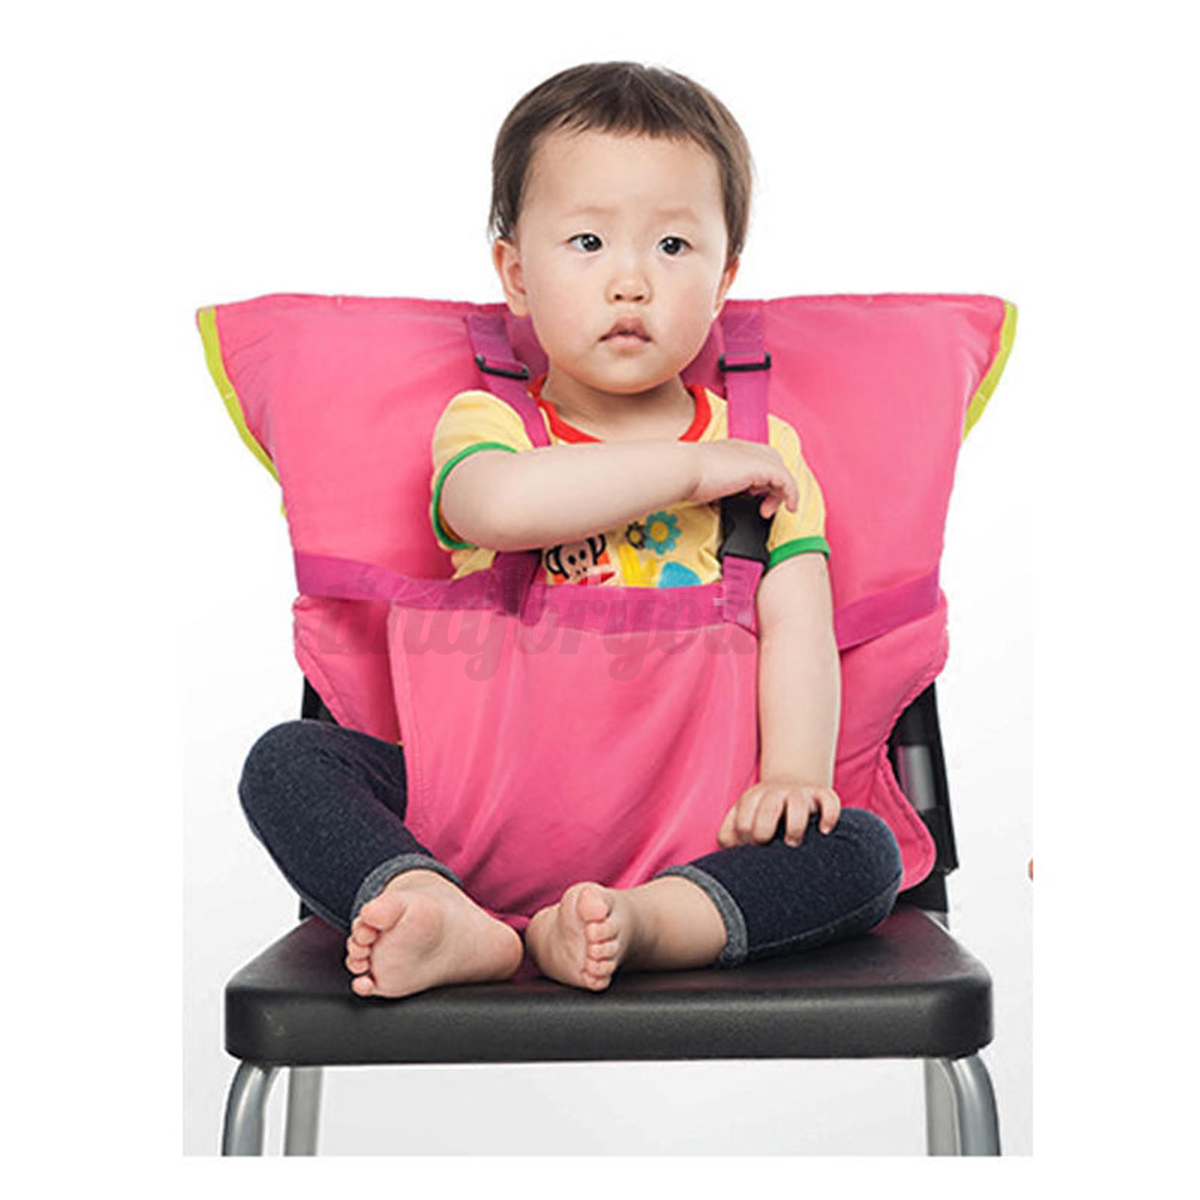 Baby Chair Portable Baby Infant Kids Seat High Chair Harness Seat